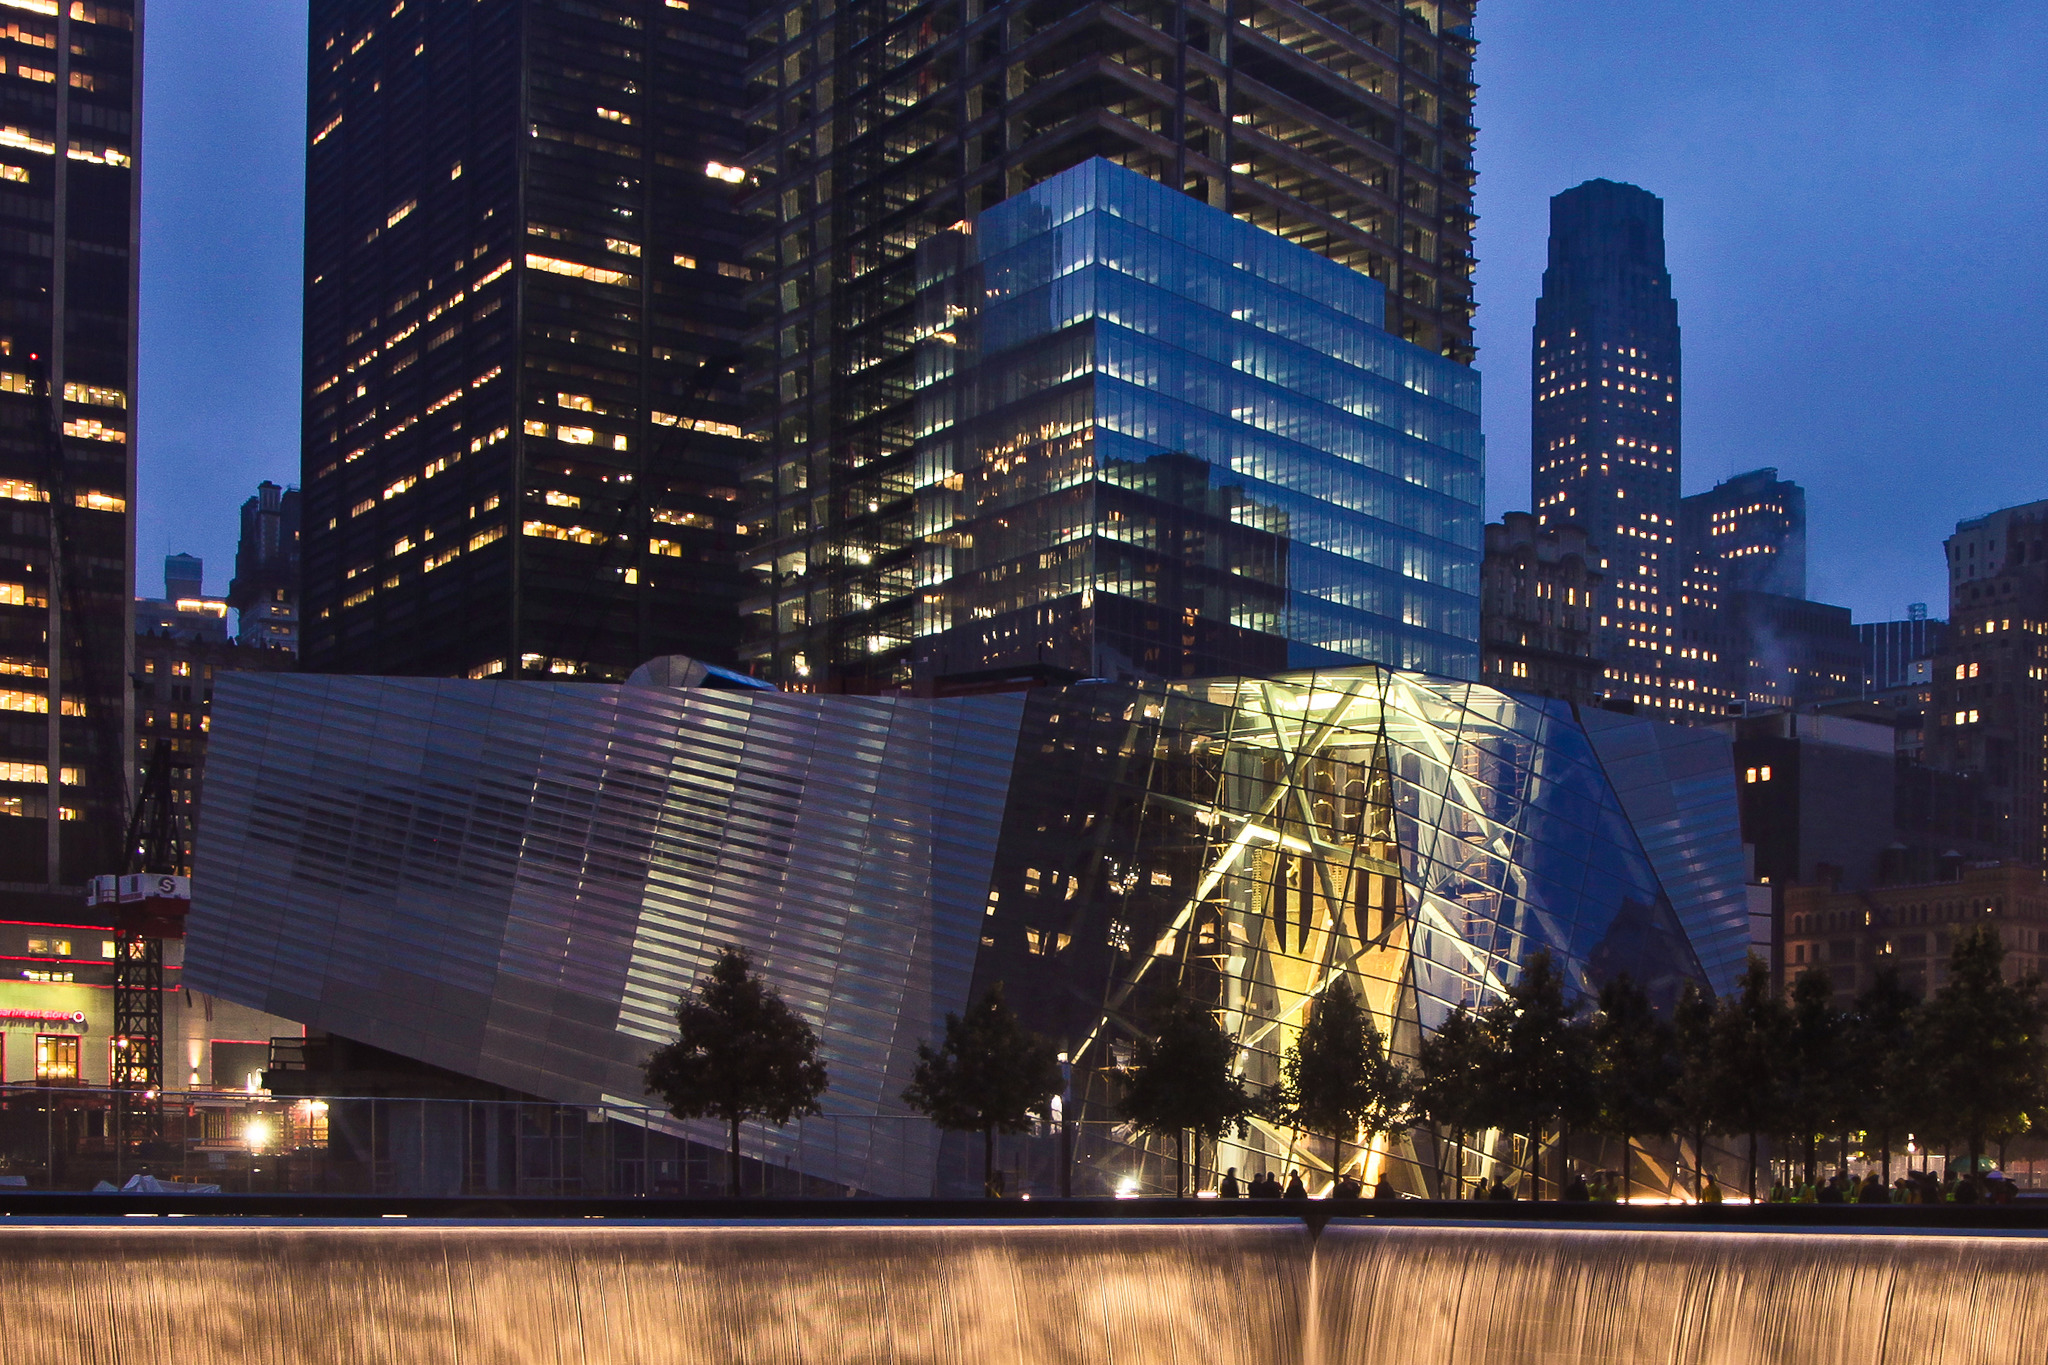 New York attractions: Places opening in 2013 and beyond